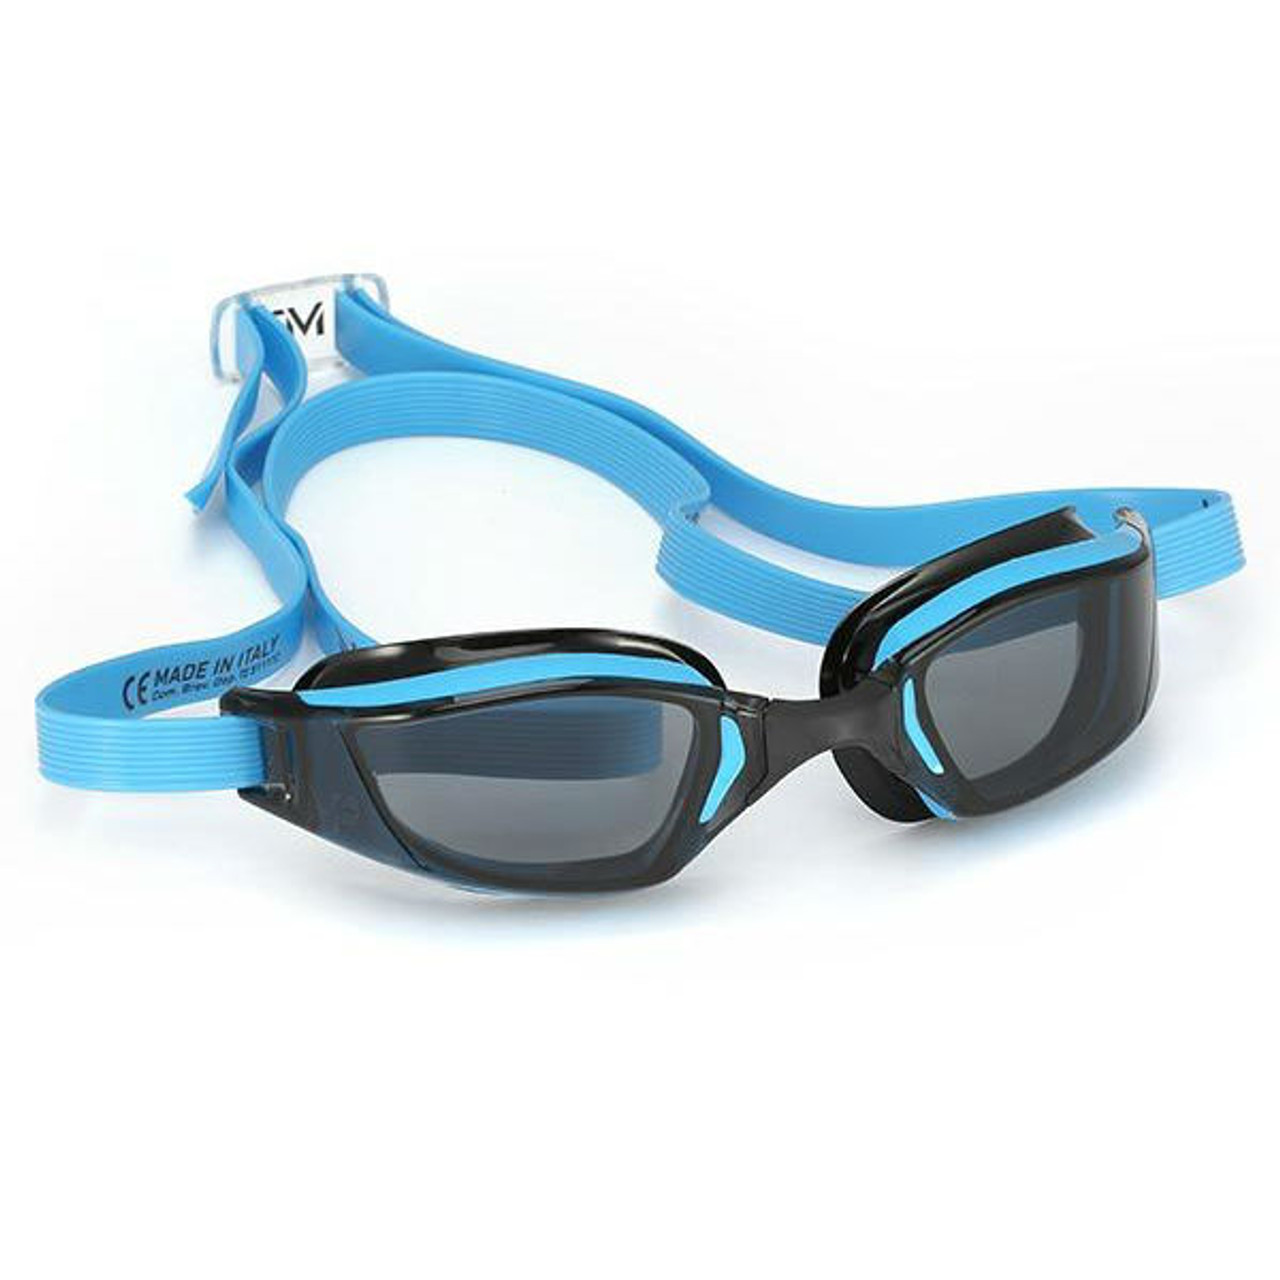 1d5c4e00a1 Aqua Sphere MP XCEED Swimming Goggles - Smoked Lens in Blue ...